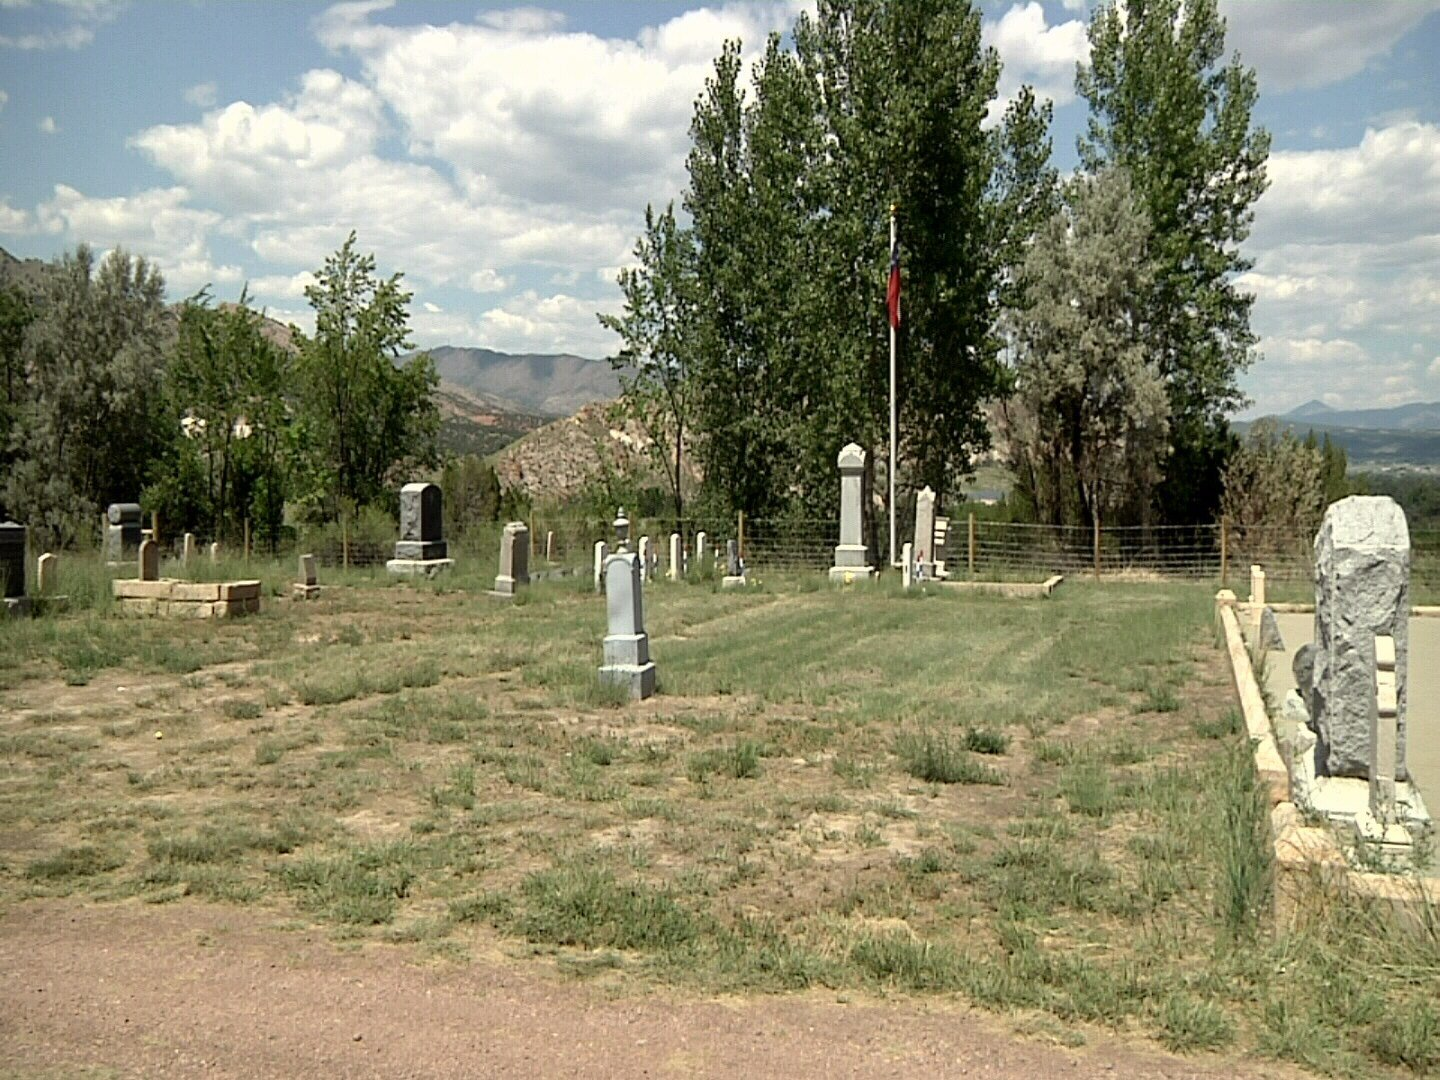 The flag of the Confederate States of America flies over the graves of Confederate Civil War veterans at Greenwood Cemetery in Canon City